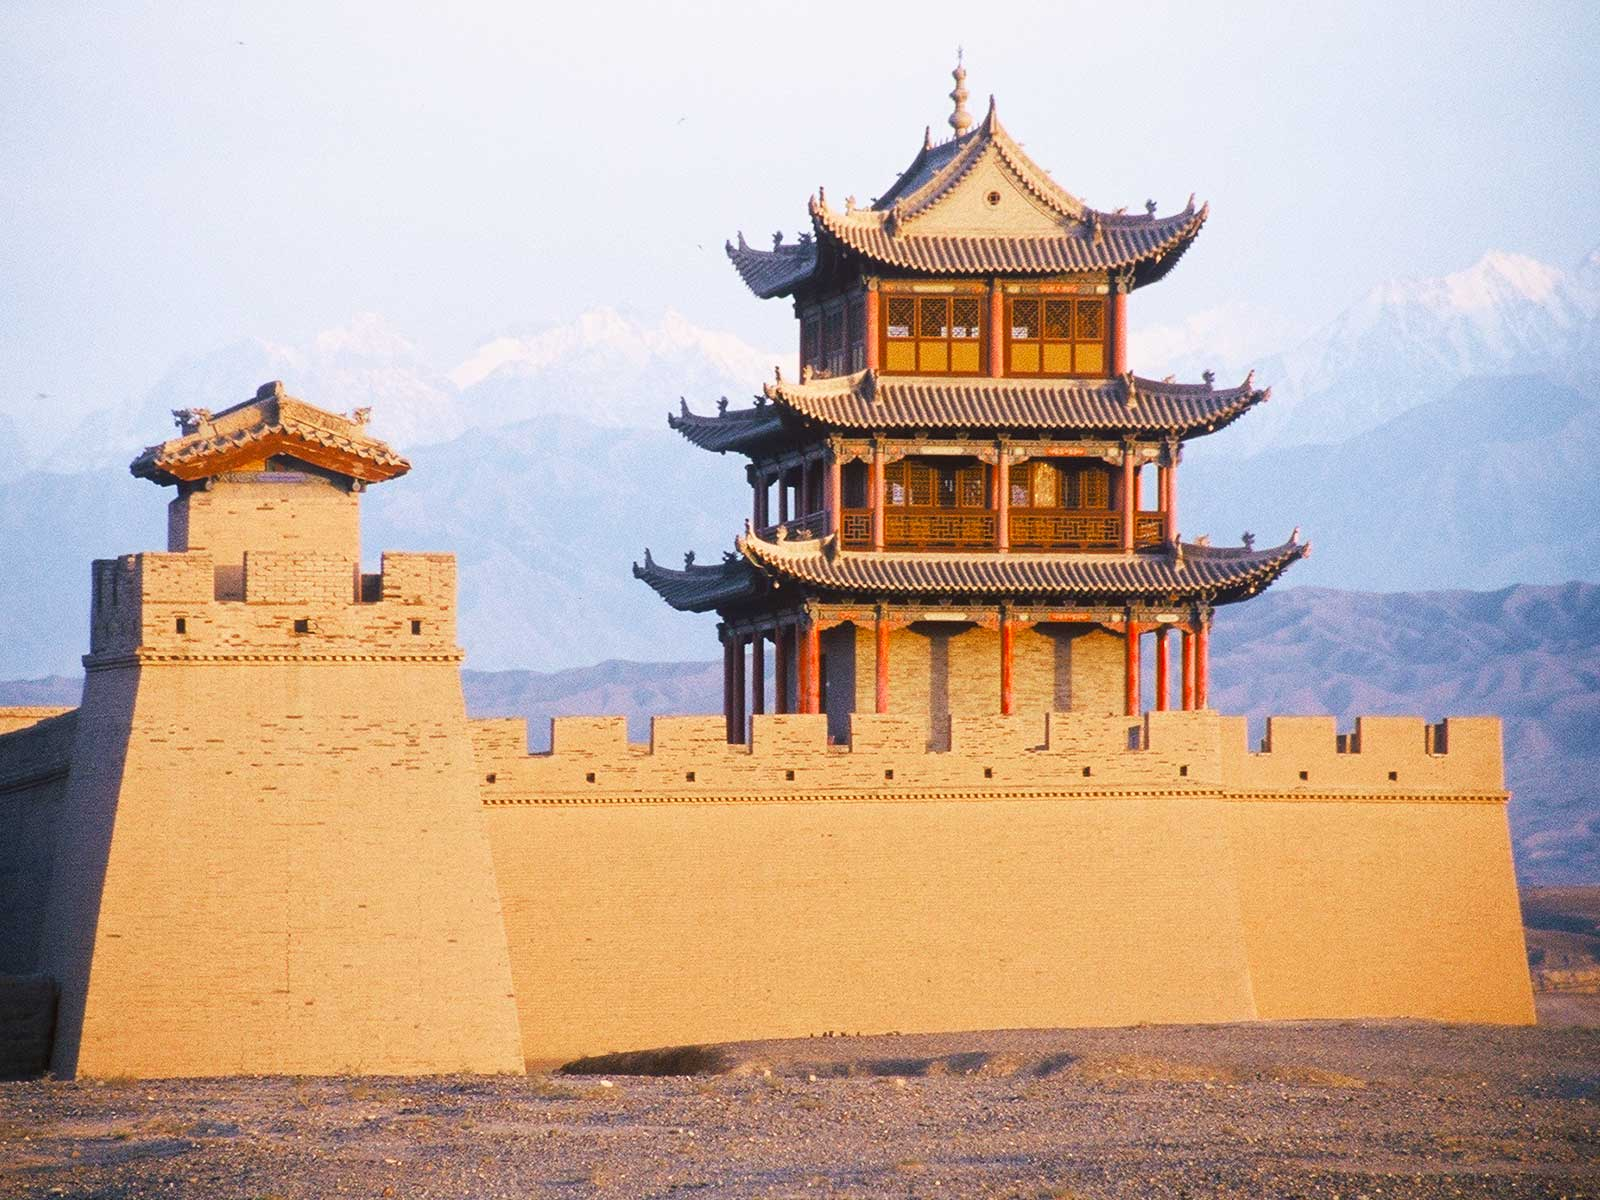 Jiayuguan Fort - Silk Road Photo Journal - Steven Andrew Martin PhD - Eastern Civilization Research Project